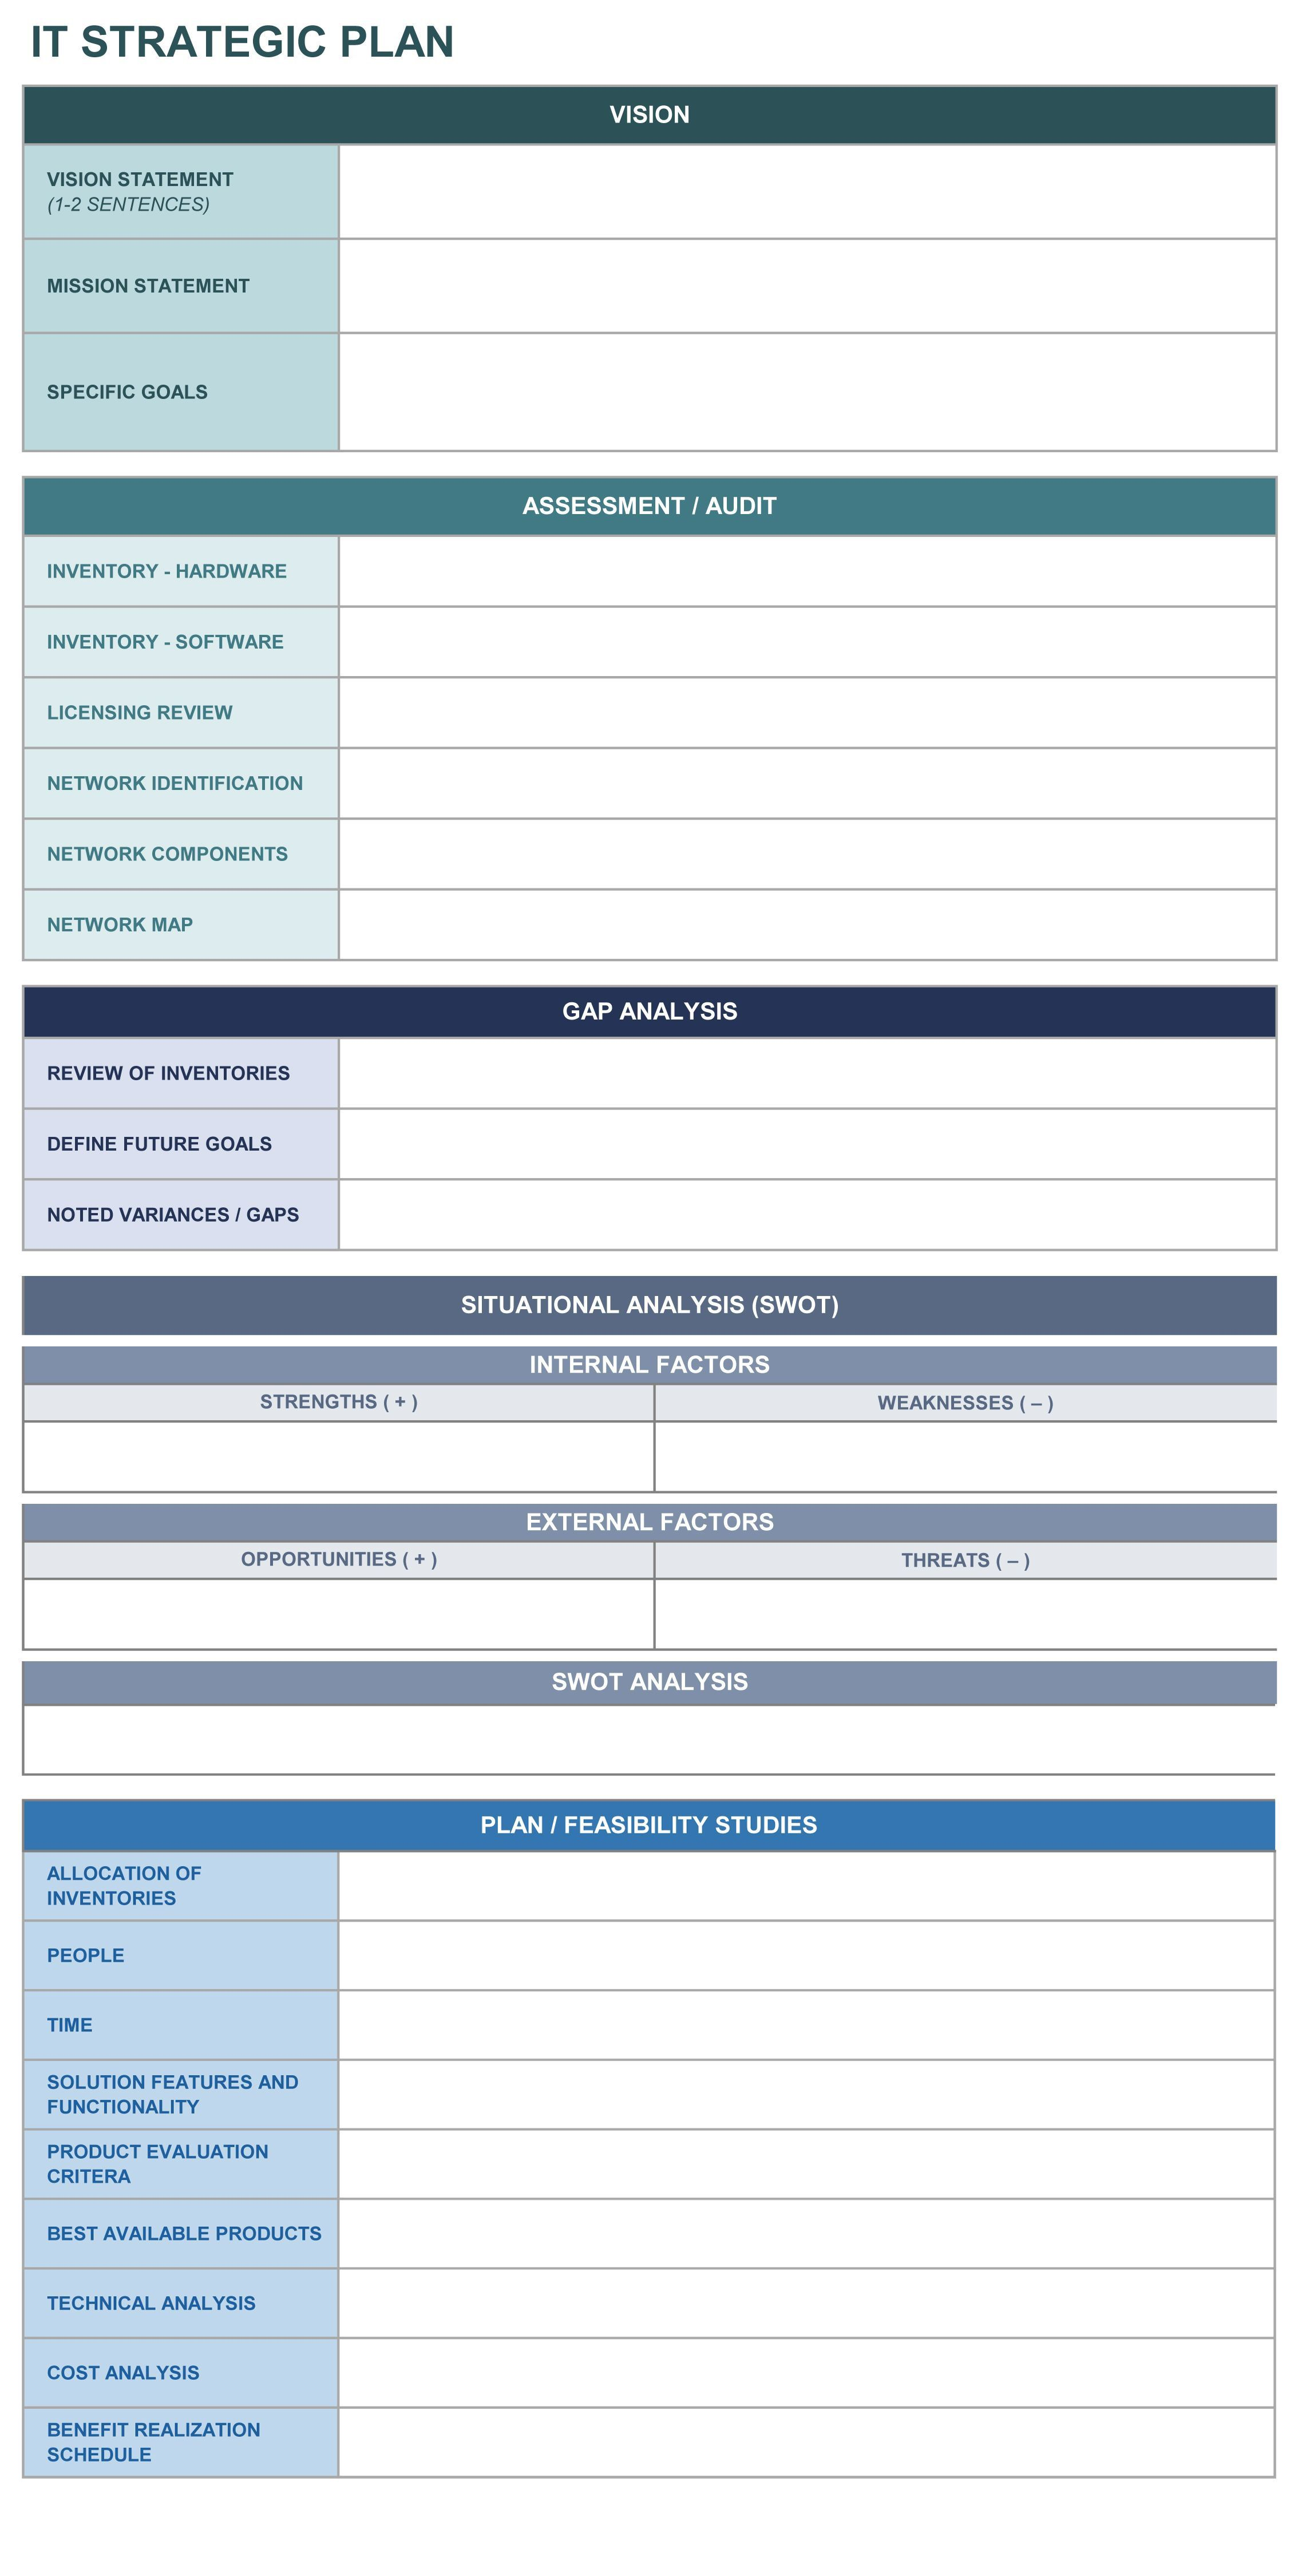 001 Breathtaking Strategic Plan Template Excel High Def  Action CommunicationFull